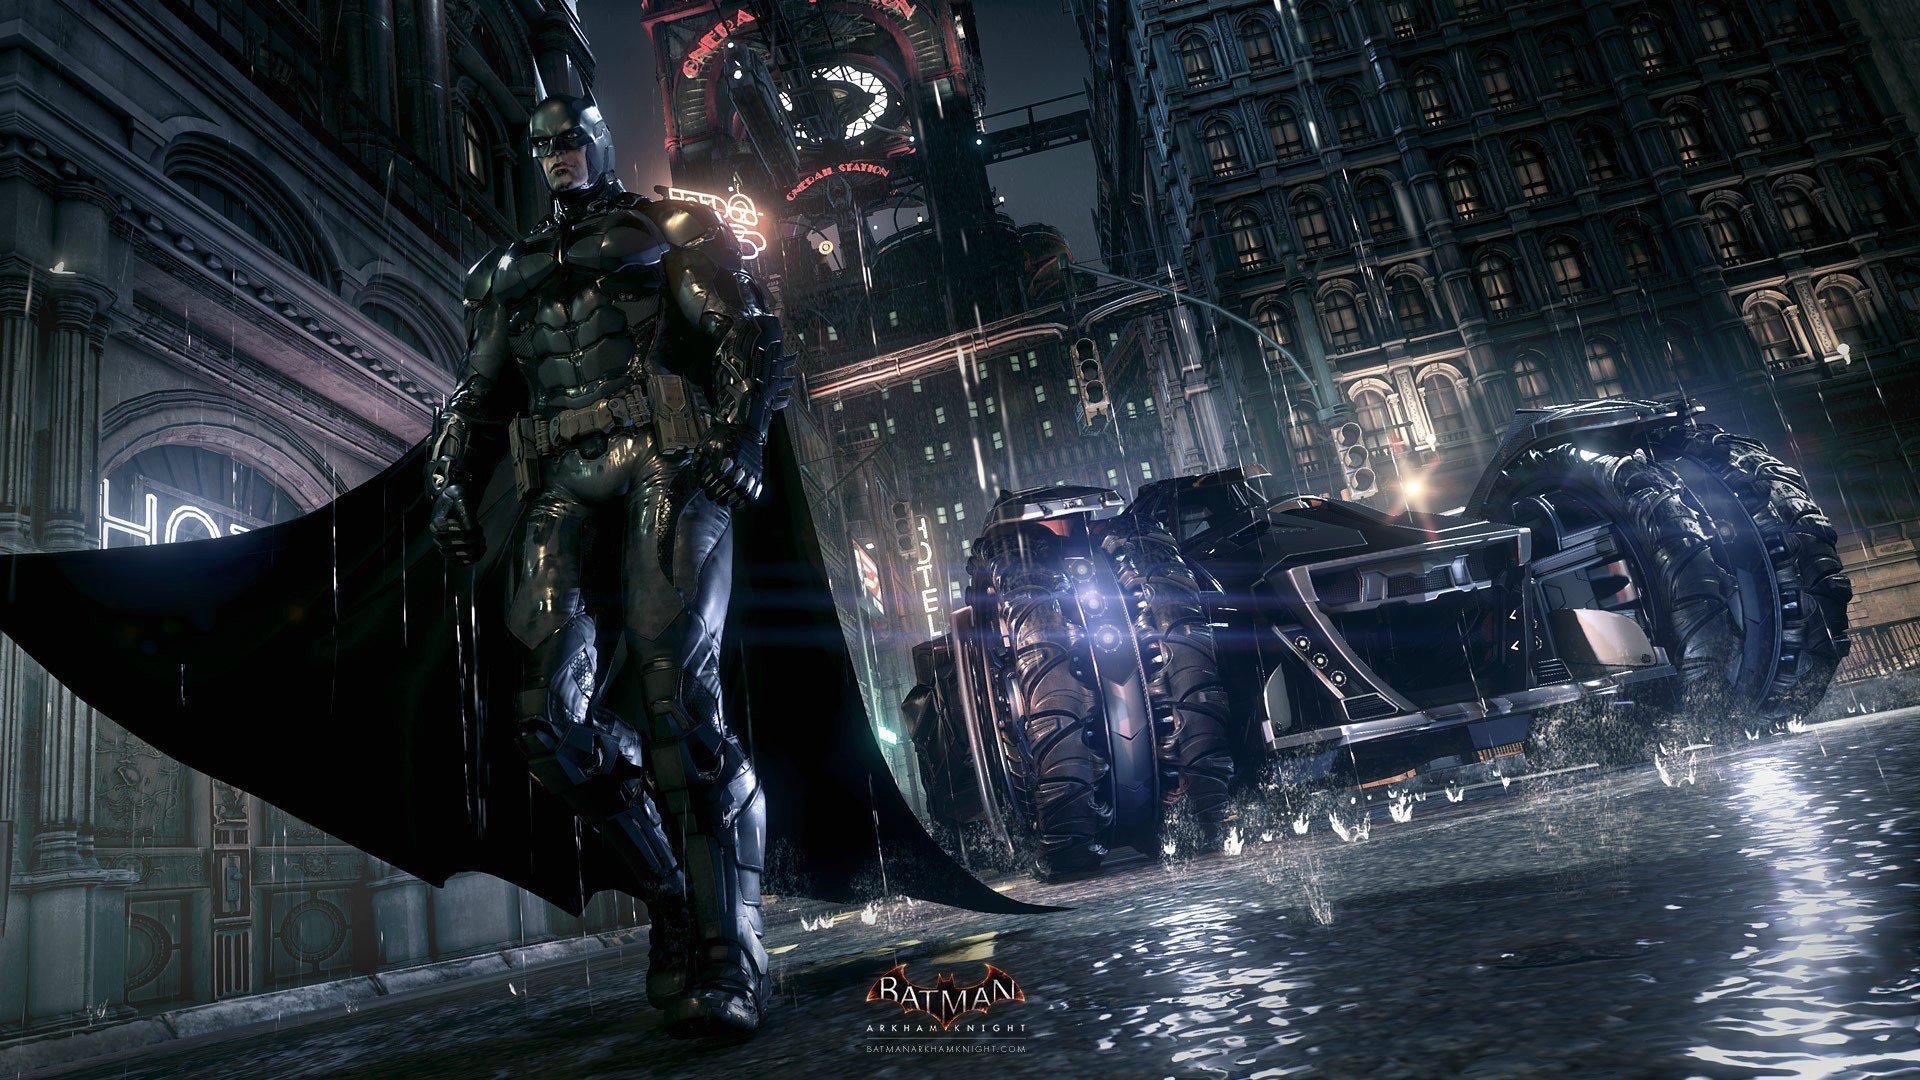 wallpaper batman mobile - photo #47